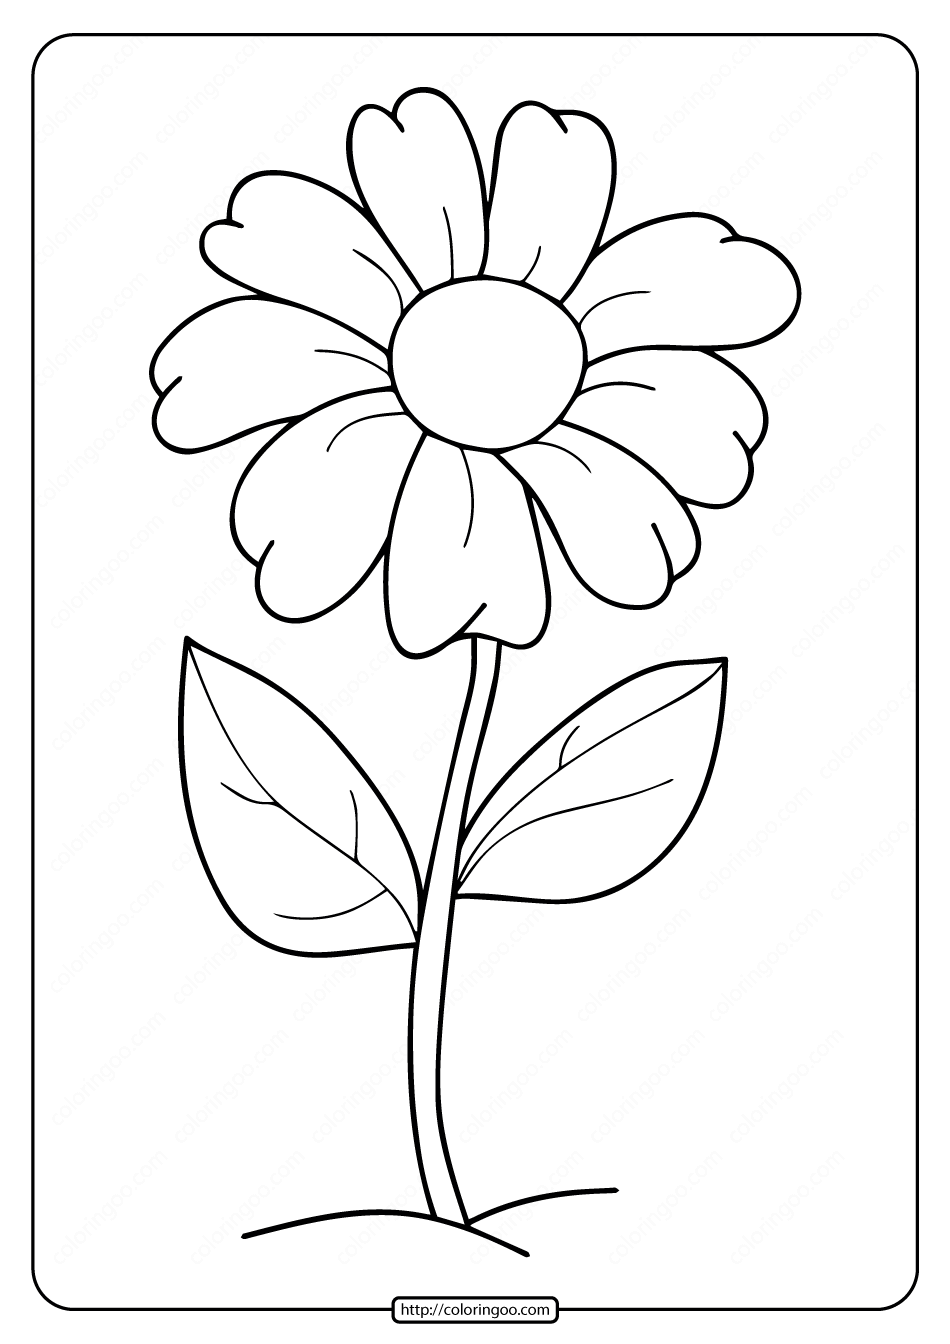 printable simple flower coloring pages free printable simple flower coloring pages printable coloring flower simple pages